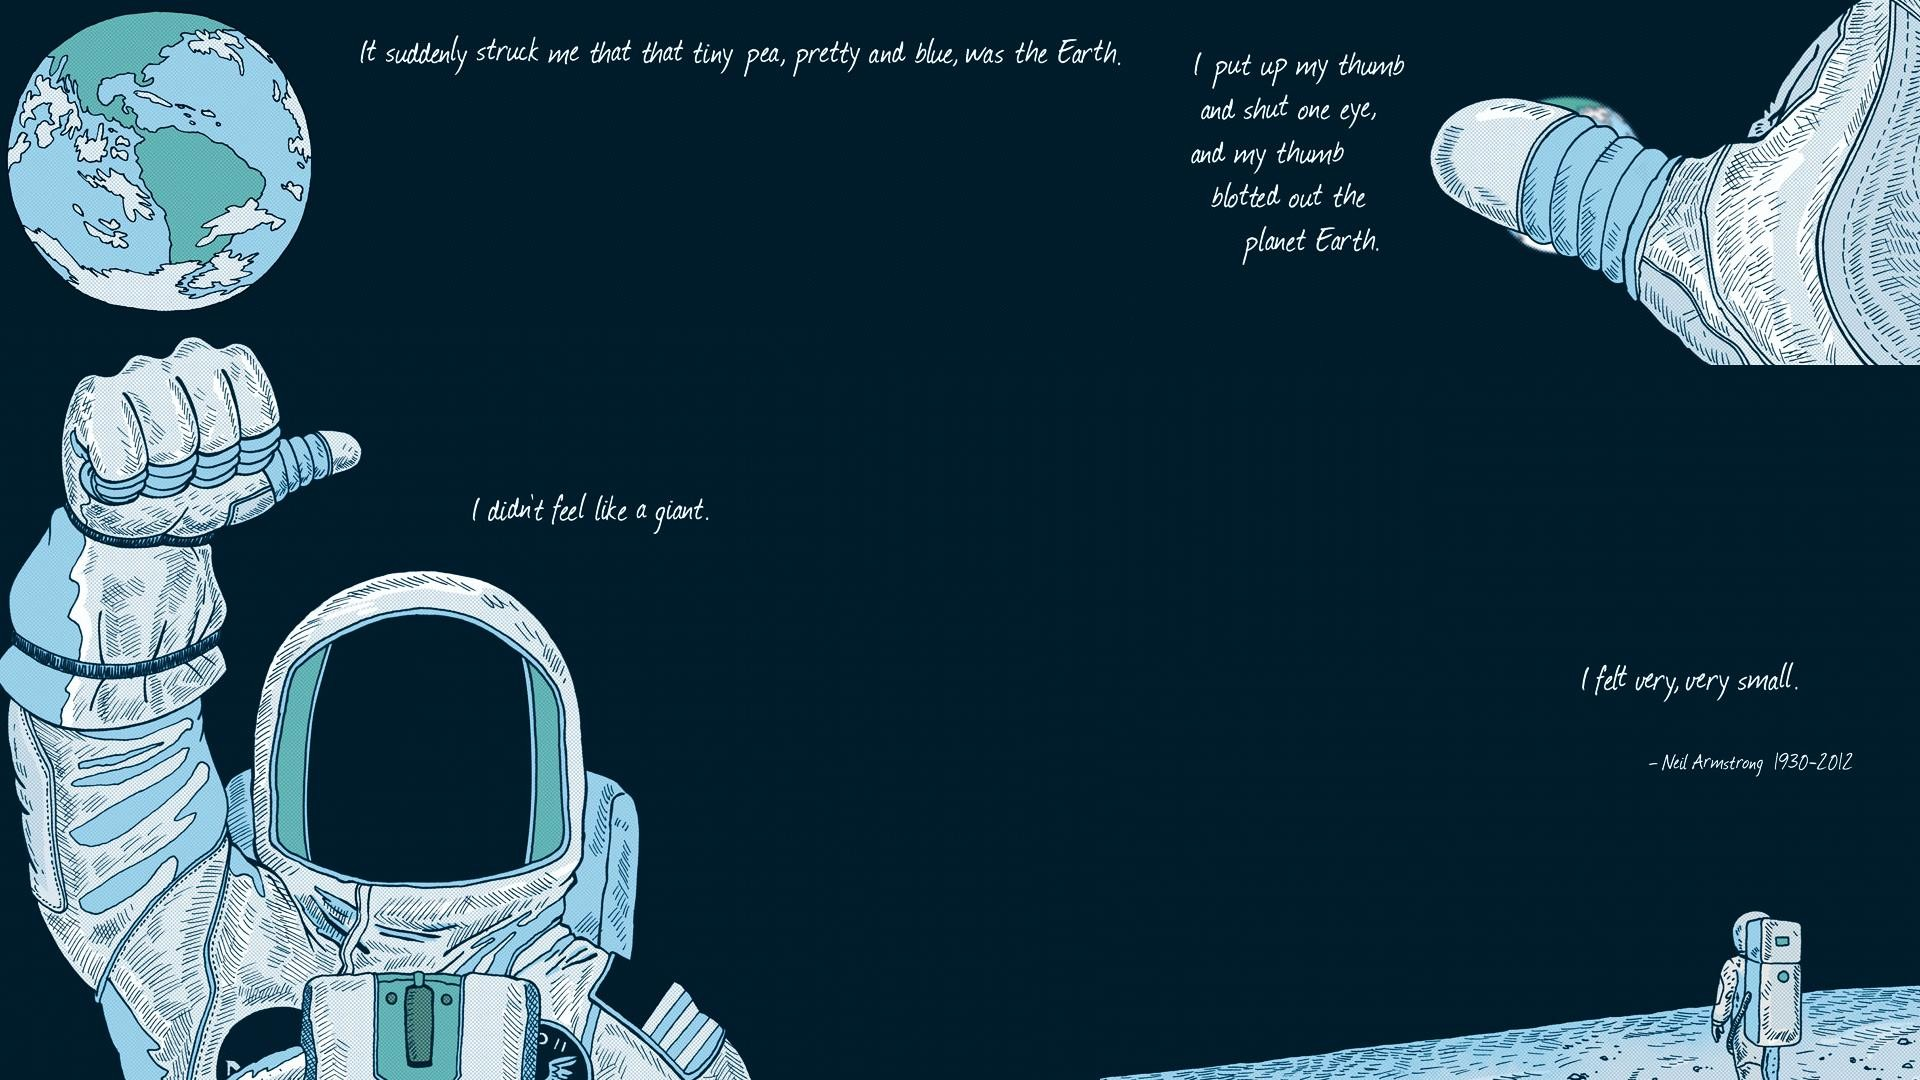 General 1920x1080 Neil Armstrong Earth space space suit Moon text typography artwork astronaut